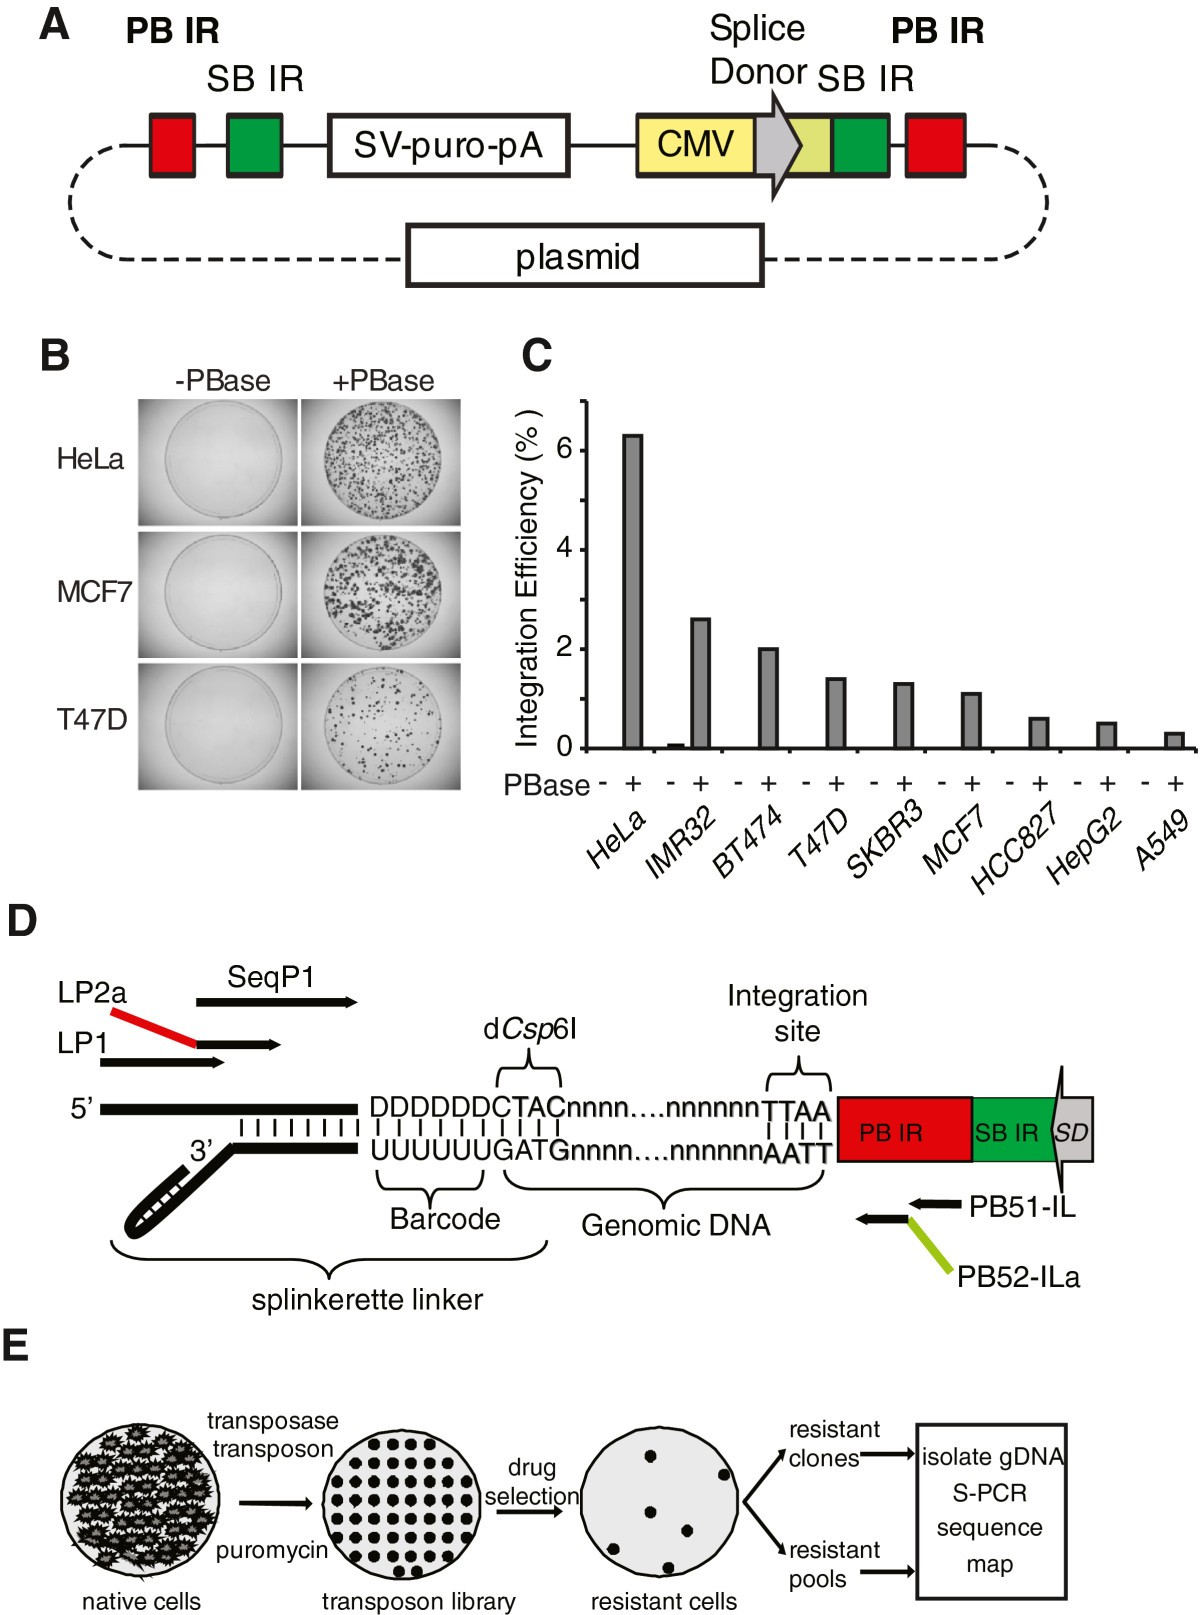 Transposon activation mutagenesis as a screening tool for identifying resistance to cancer therapeutics